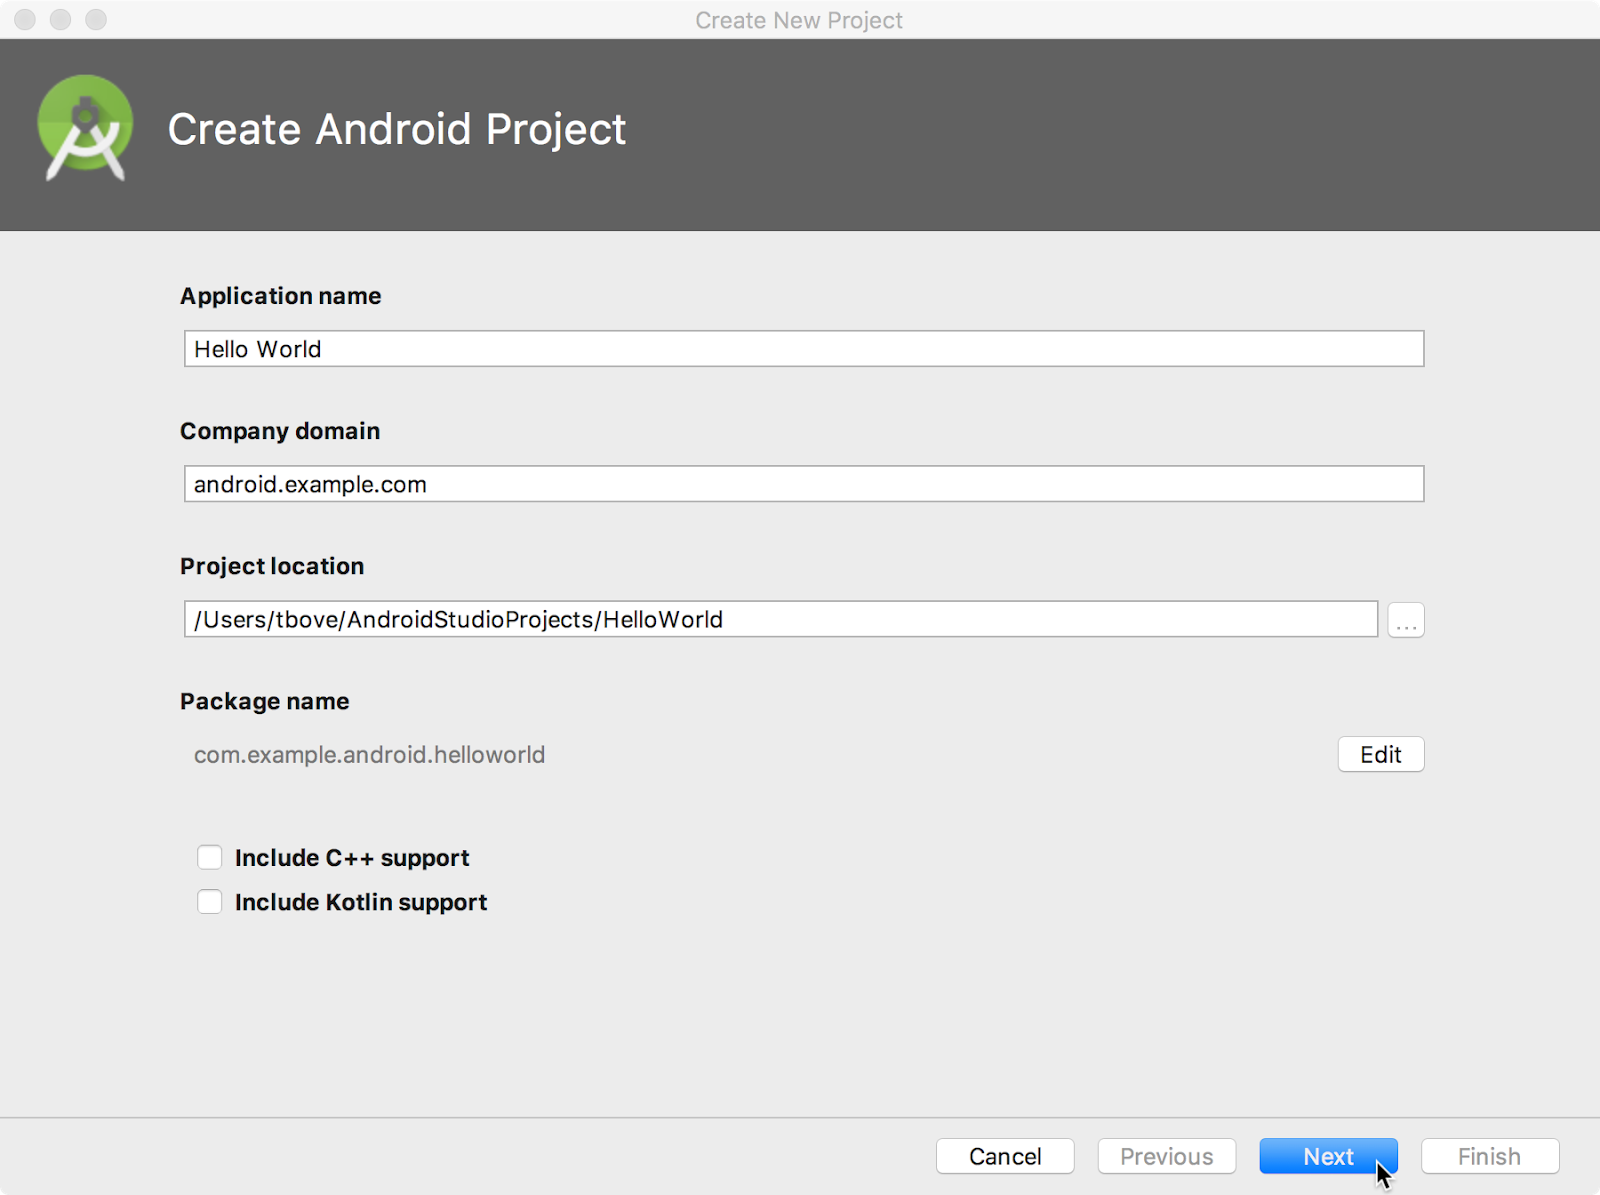 Create Android Project window